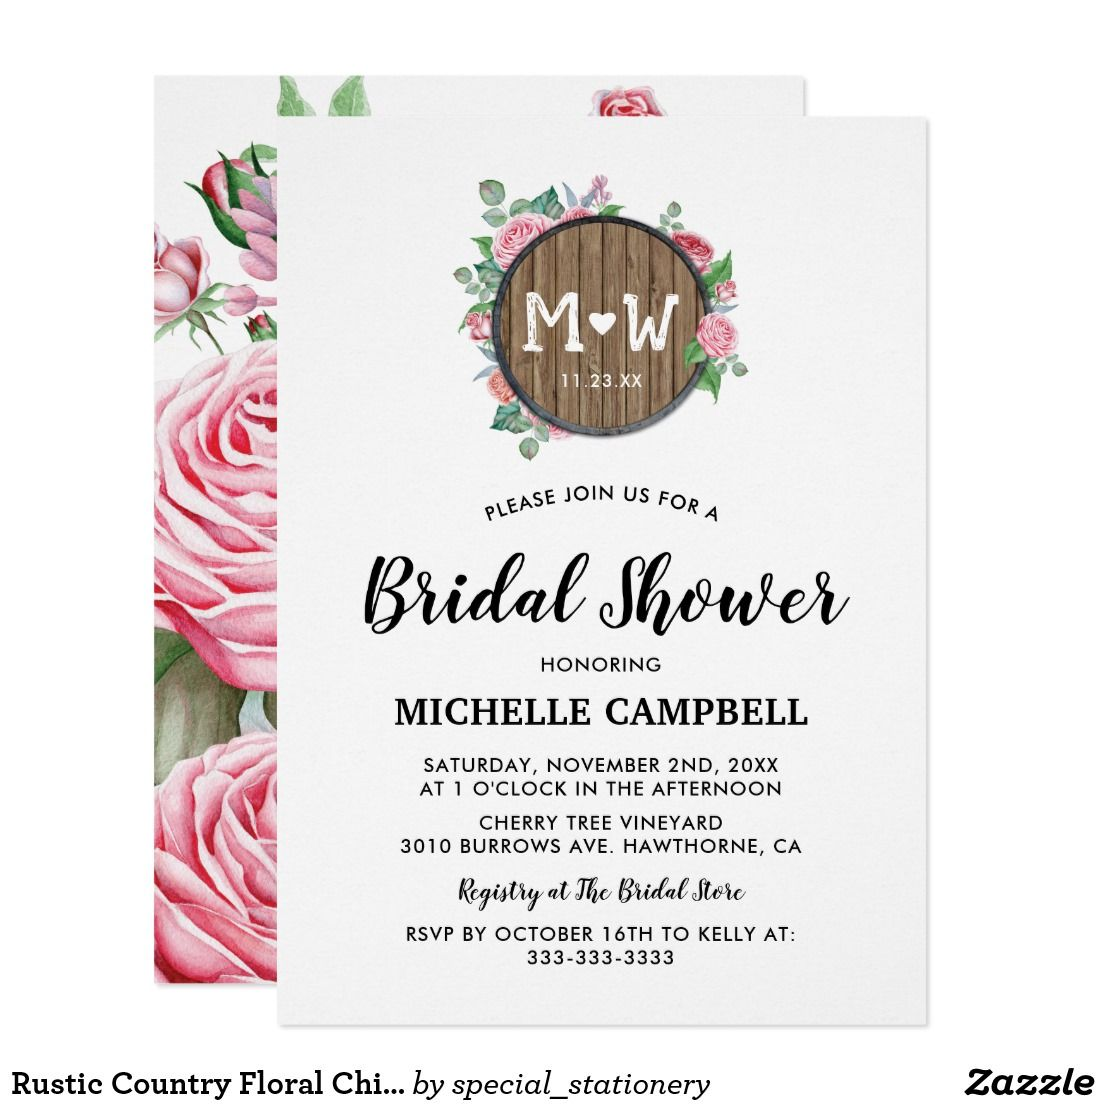 Rustic Country Floral Chic Barn Bridal Shower Invitation | Pinterest ...